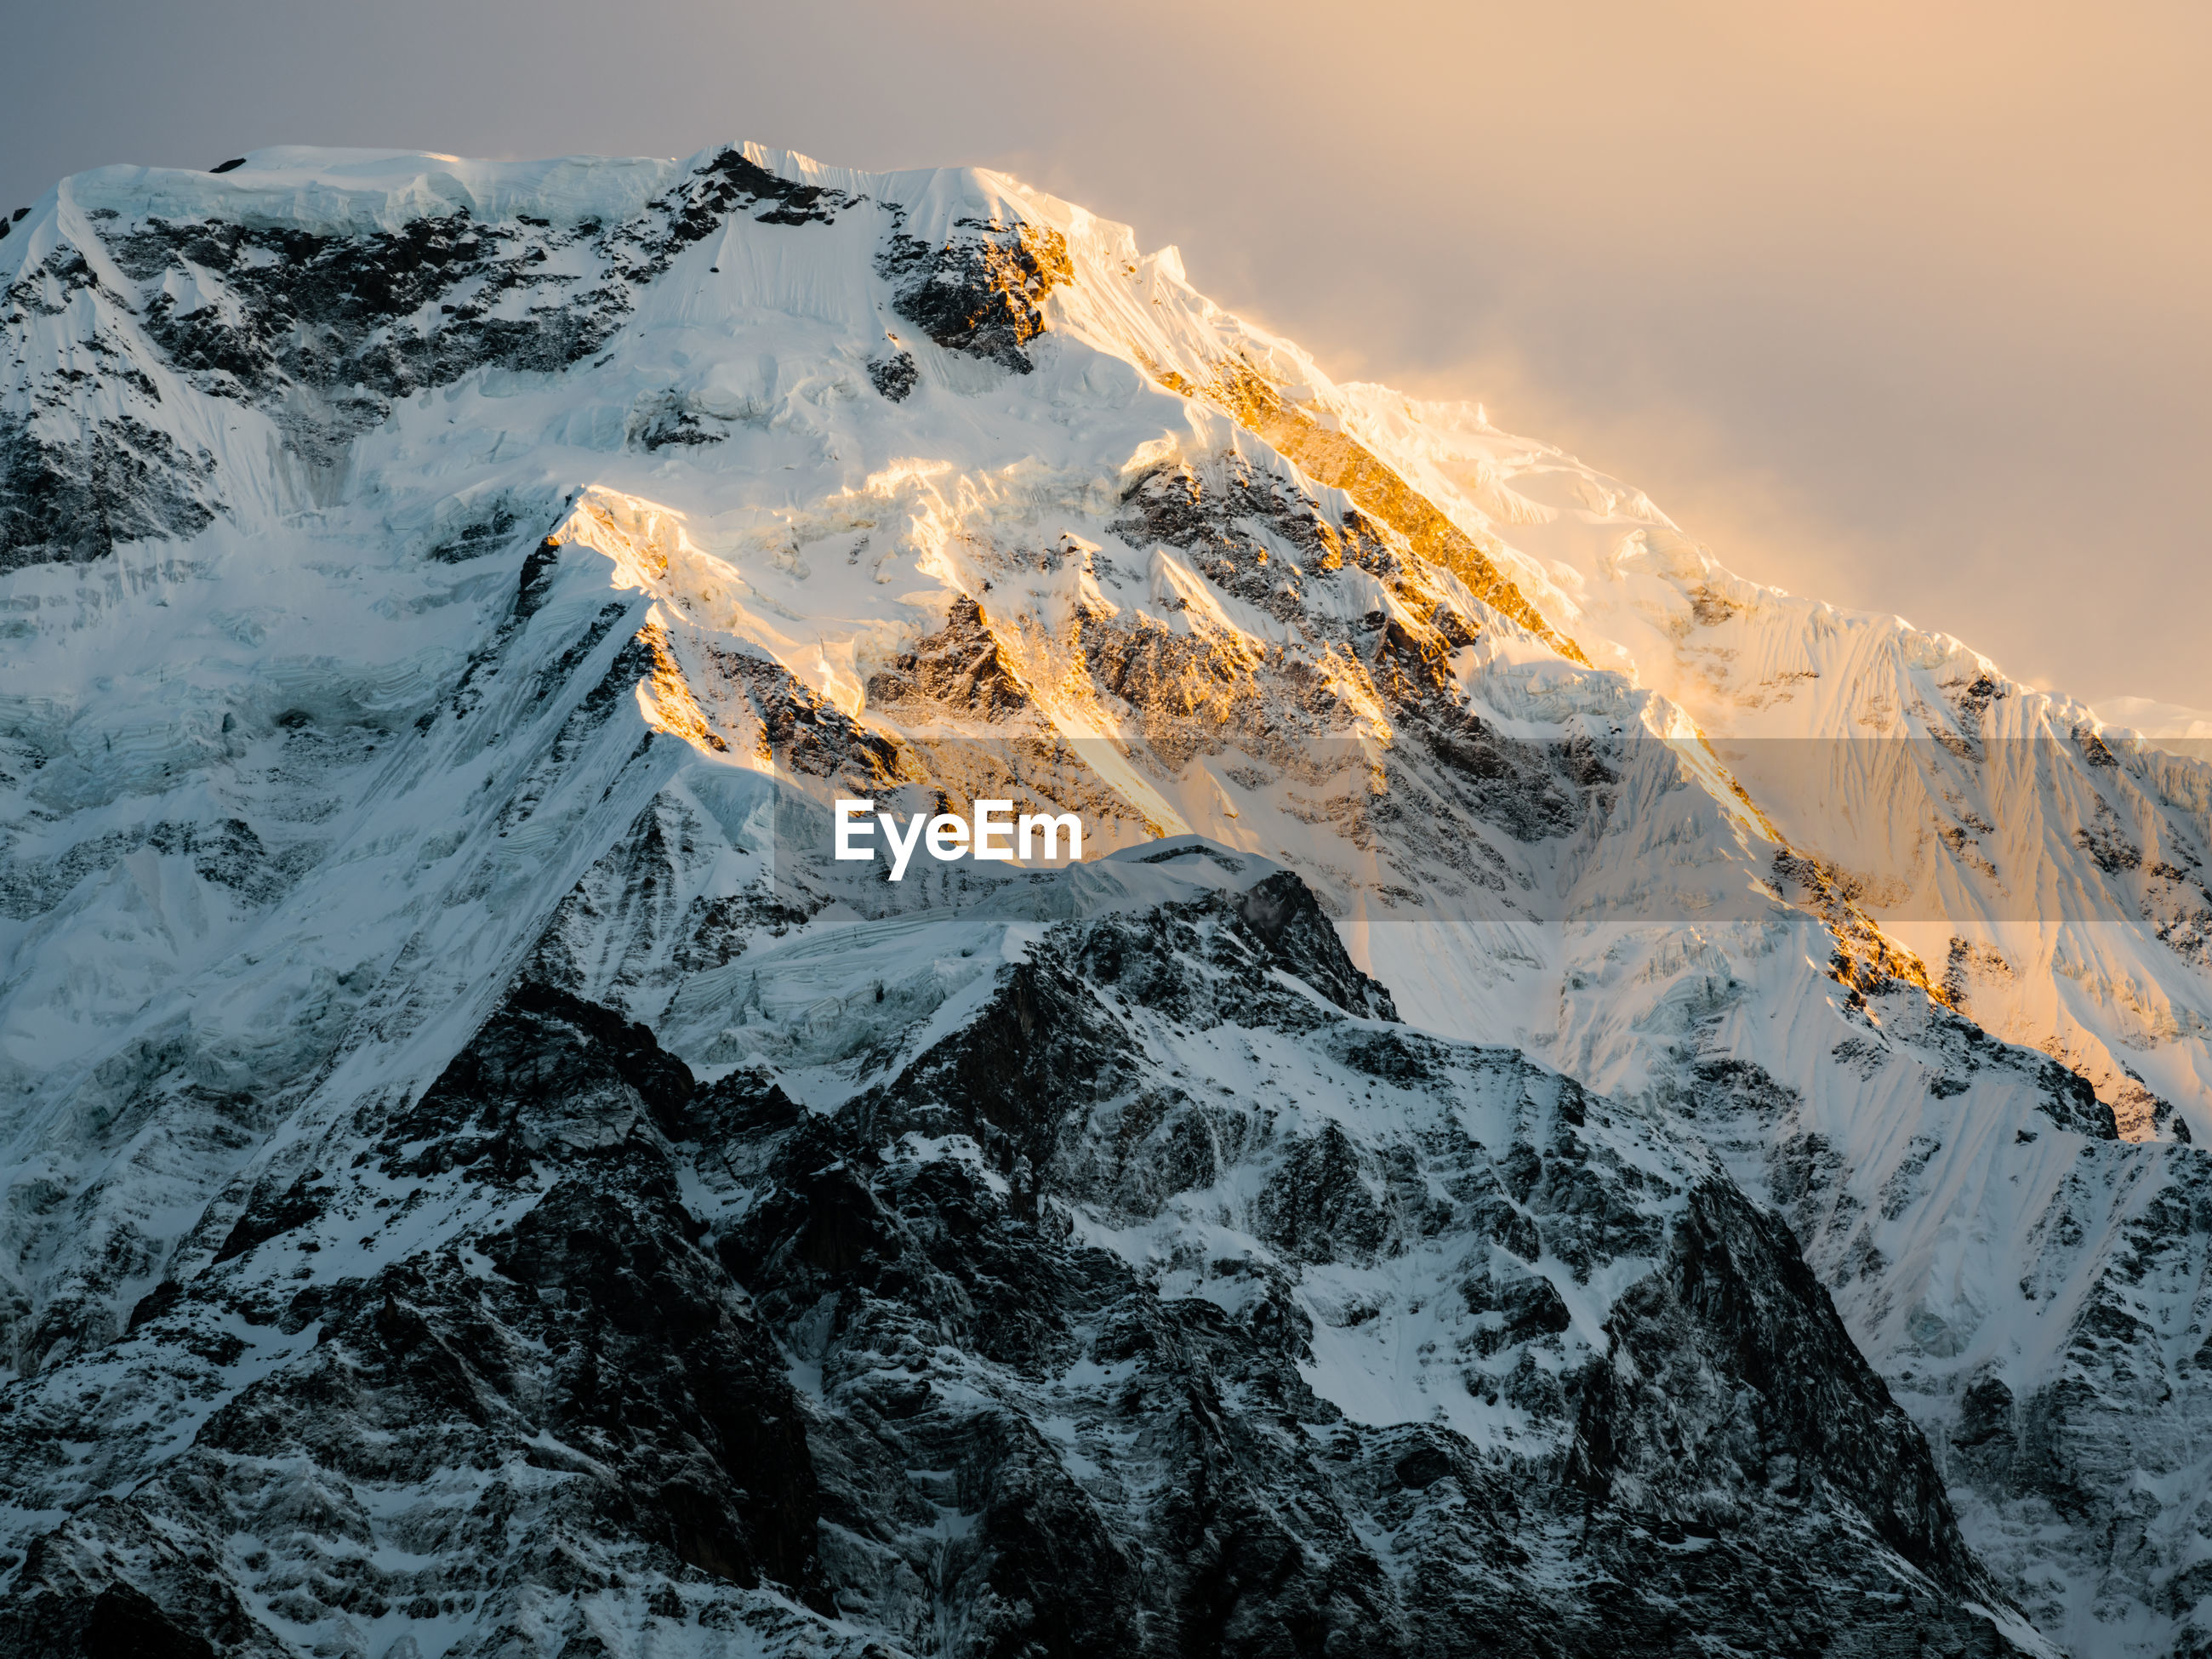 The summit of annapurna south at sunrise, sunlight shining on the snowcapped ridges on the peak.